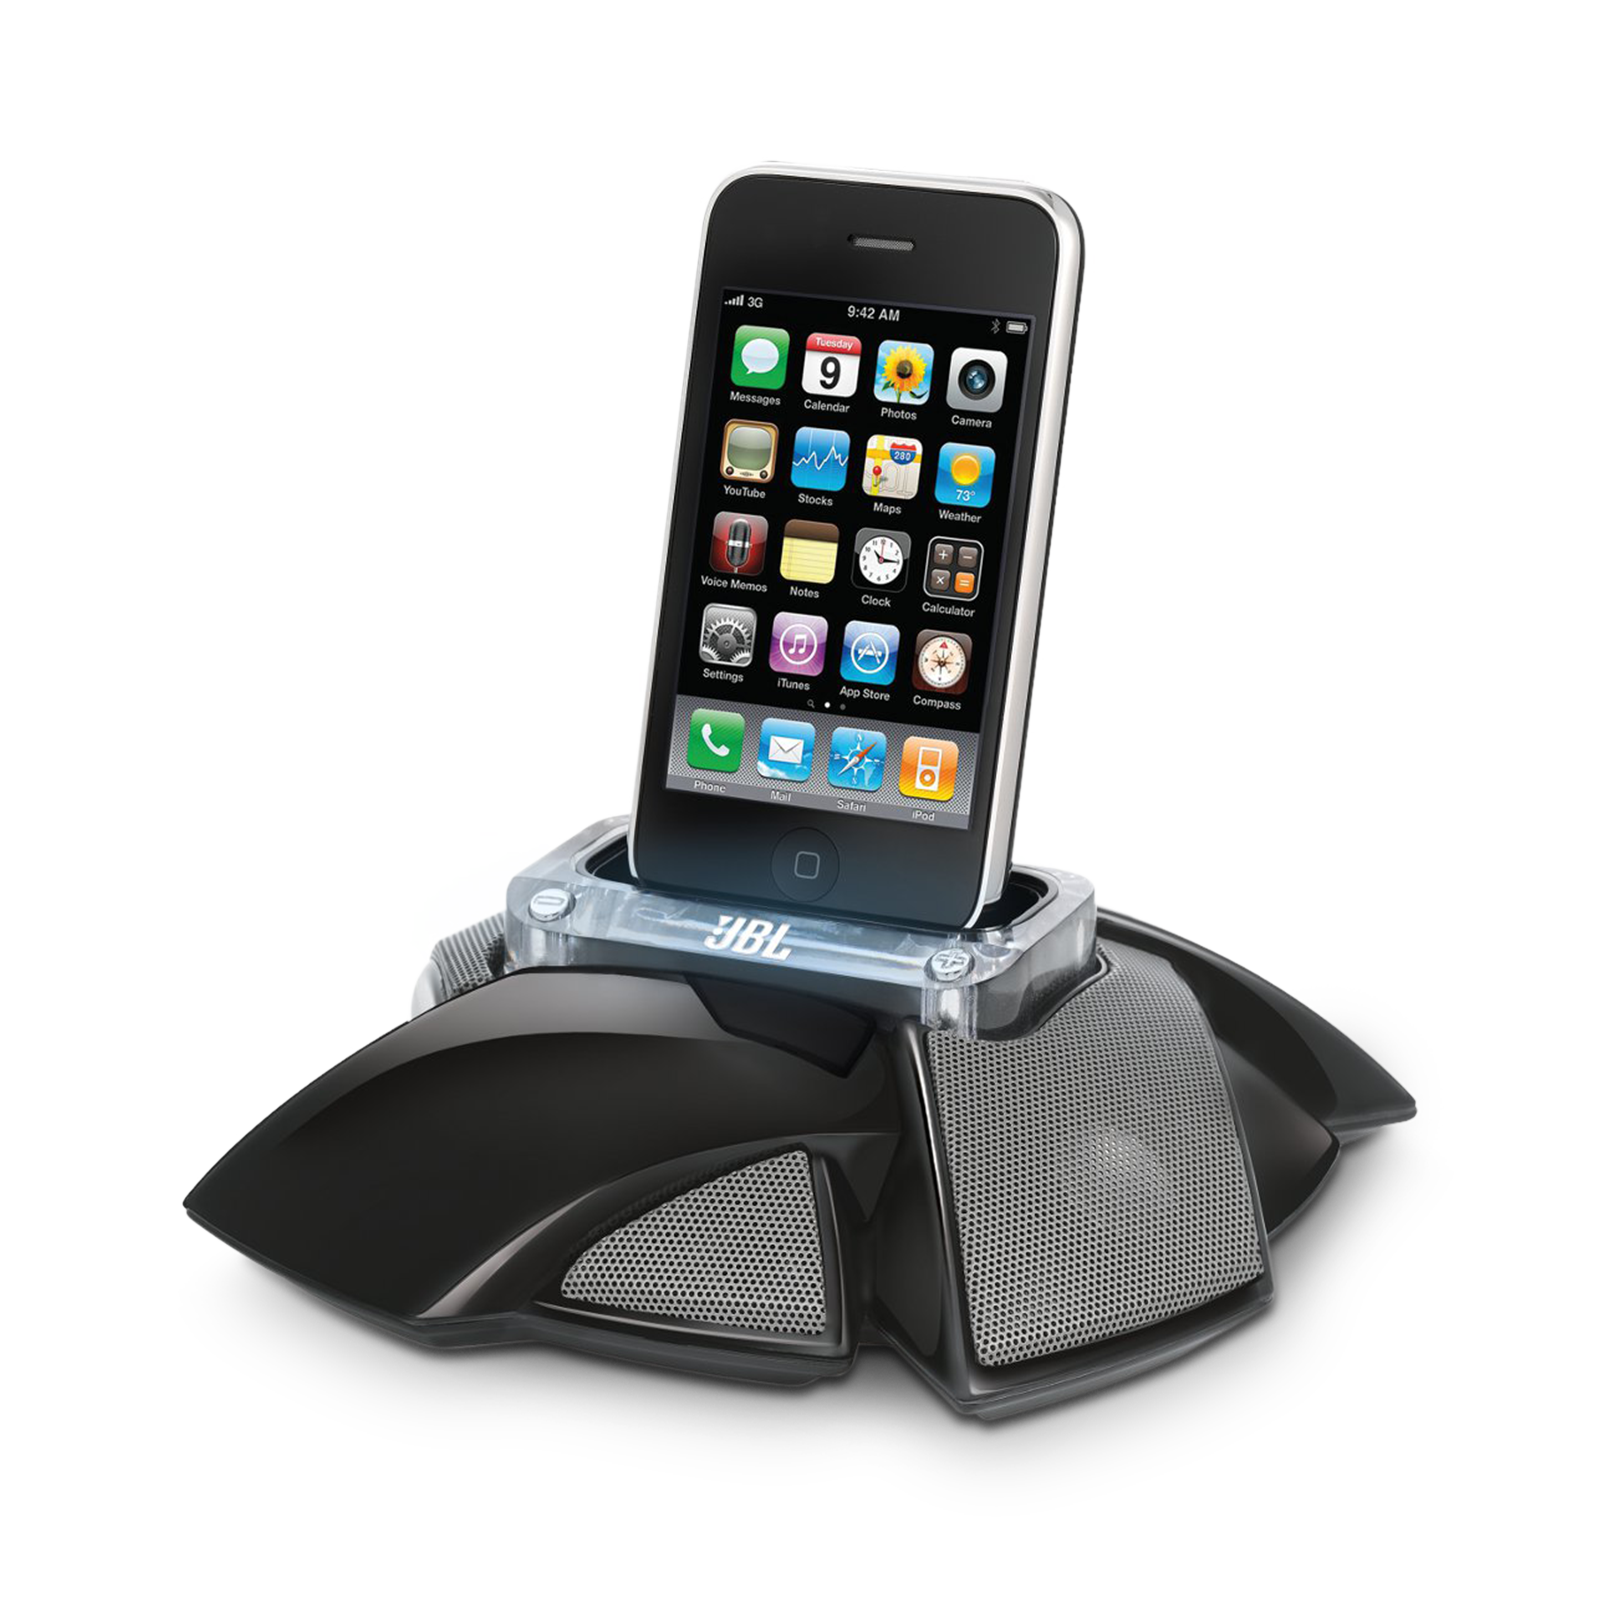 jbl on stage micro iii loudspeaker dock for ipod and iphone. Black Bedroom Furniture Sets. Home Design Ideas